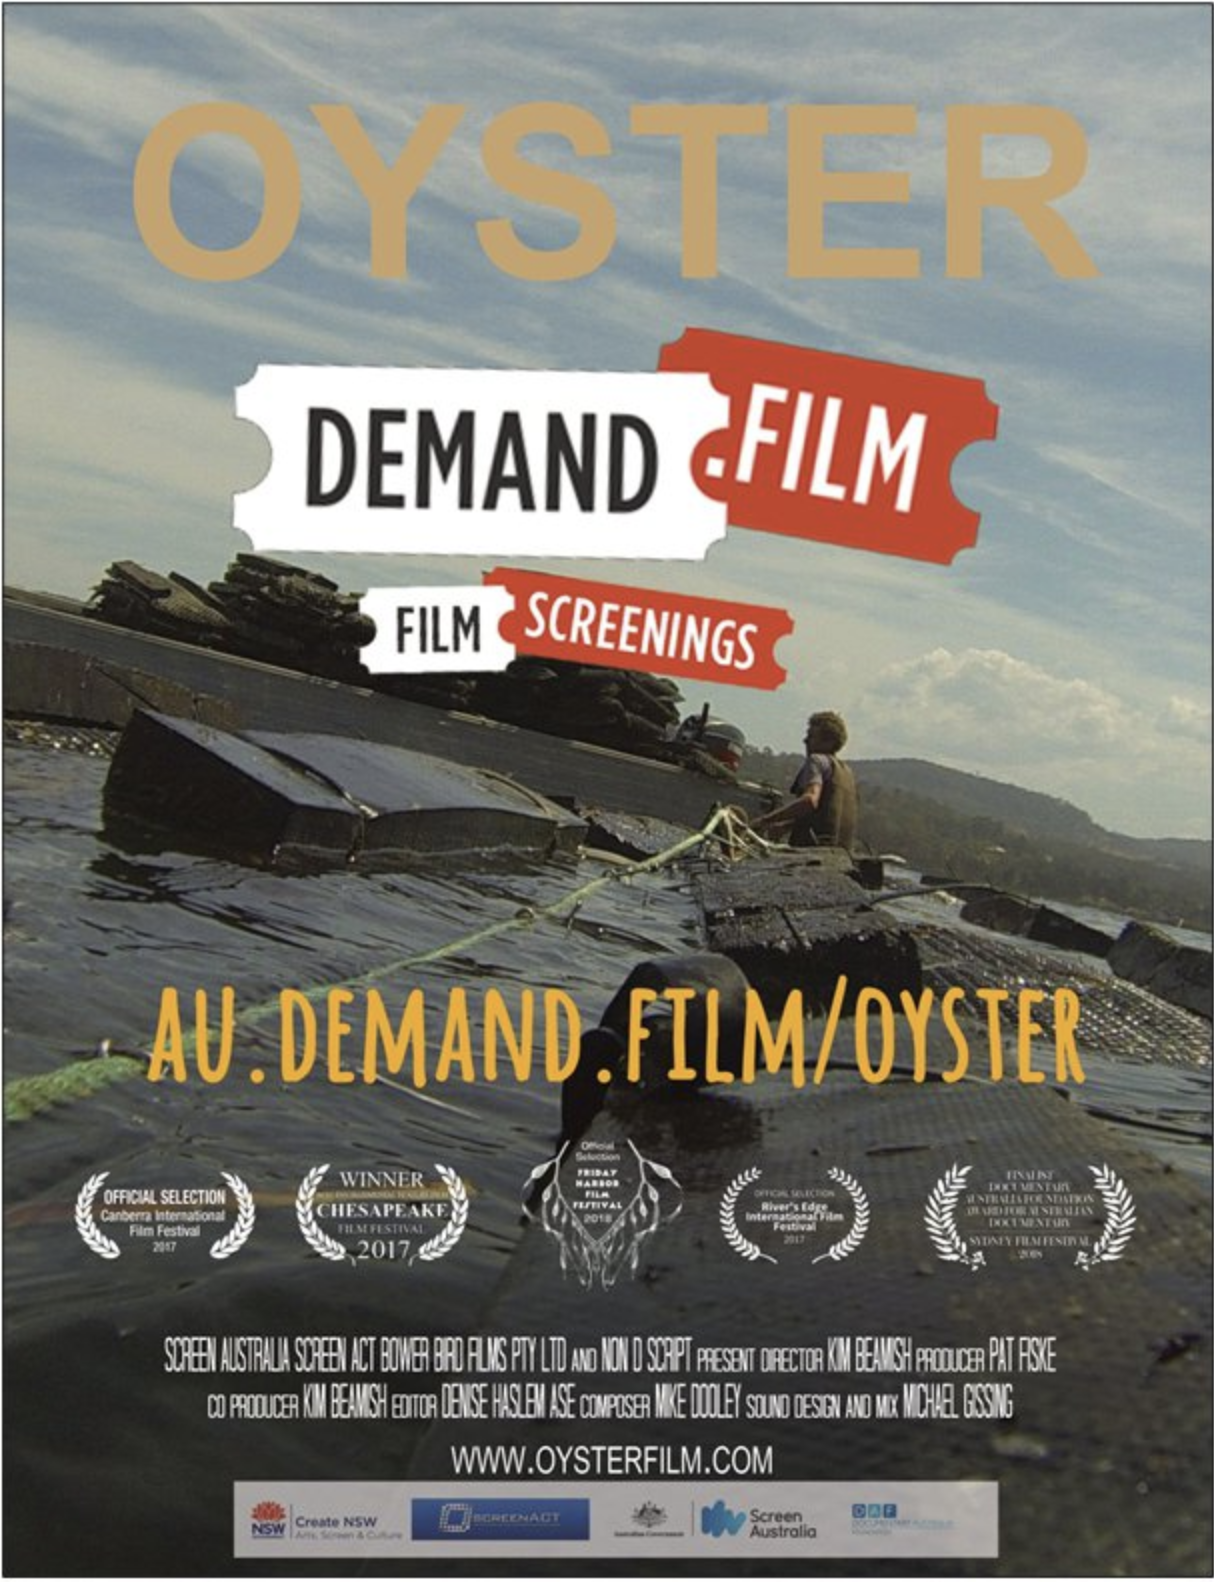 Screen the film at your local cinema. - DEMAND.FILM is an online platform that lets individuals and organisations choose a film they want to play at their local cinema. Here's how it works:1. Click here to visit OYSTER on the DEMAND.FILM website2. Sign up to host the screening by becoming the event's 'promoter'.3. Indicate your preferred date, time and cinema and DEMAND.FILM will get in touch to confirm the details.4. Spread the word! Invite friends and community to buy tickets via the ticket link. Let us know (info@nondscript.com) and we will send you posters and flyers as well as help you promote the event. We may even be able to come?5. Once enough tickets are sold (usually 40–50) by a designated date, the screening is confirmed. If not enough tickets are sold, no one is charged and the event is cancelled.